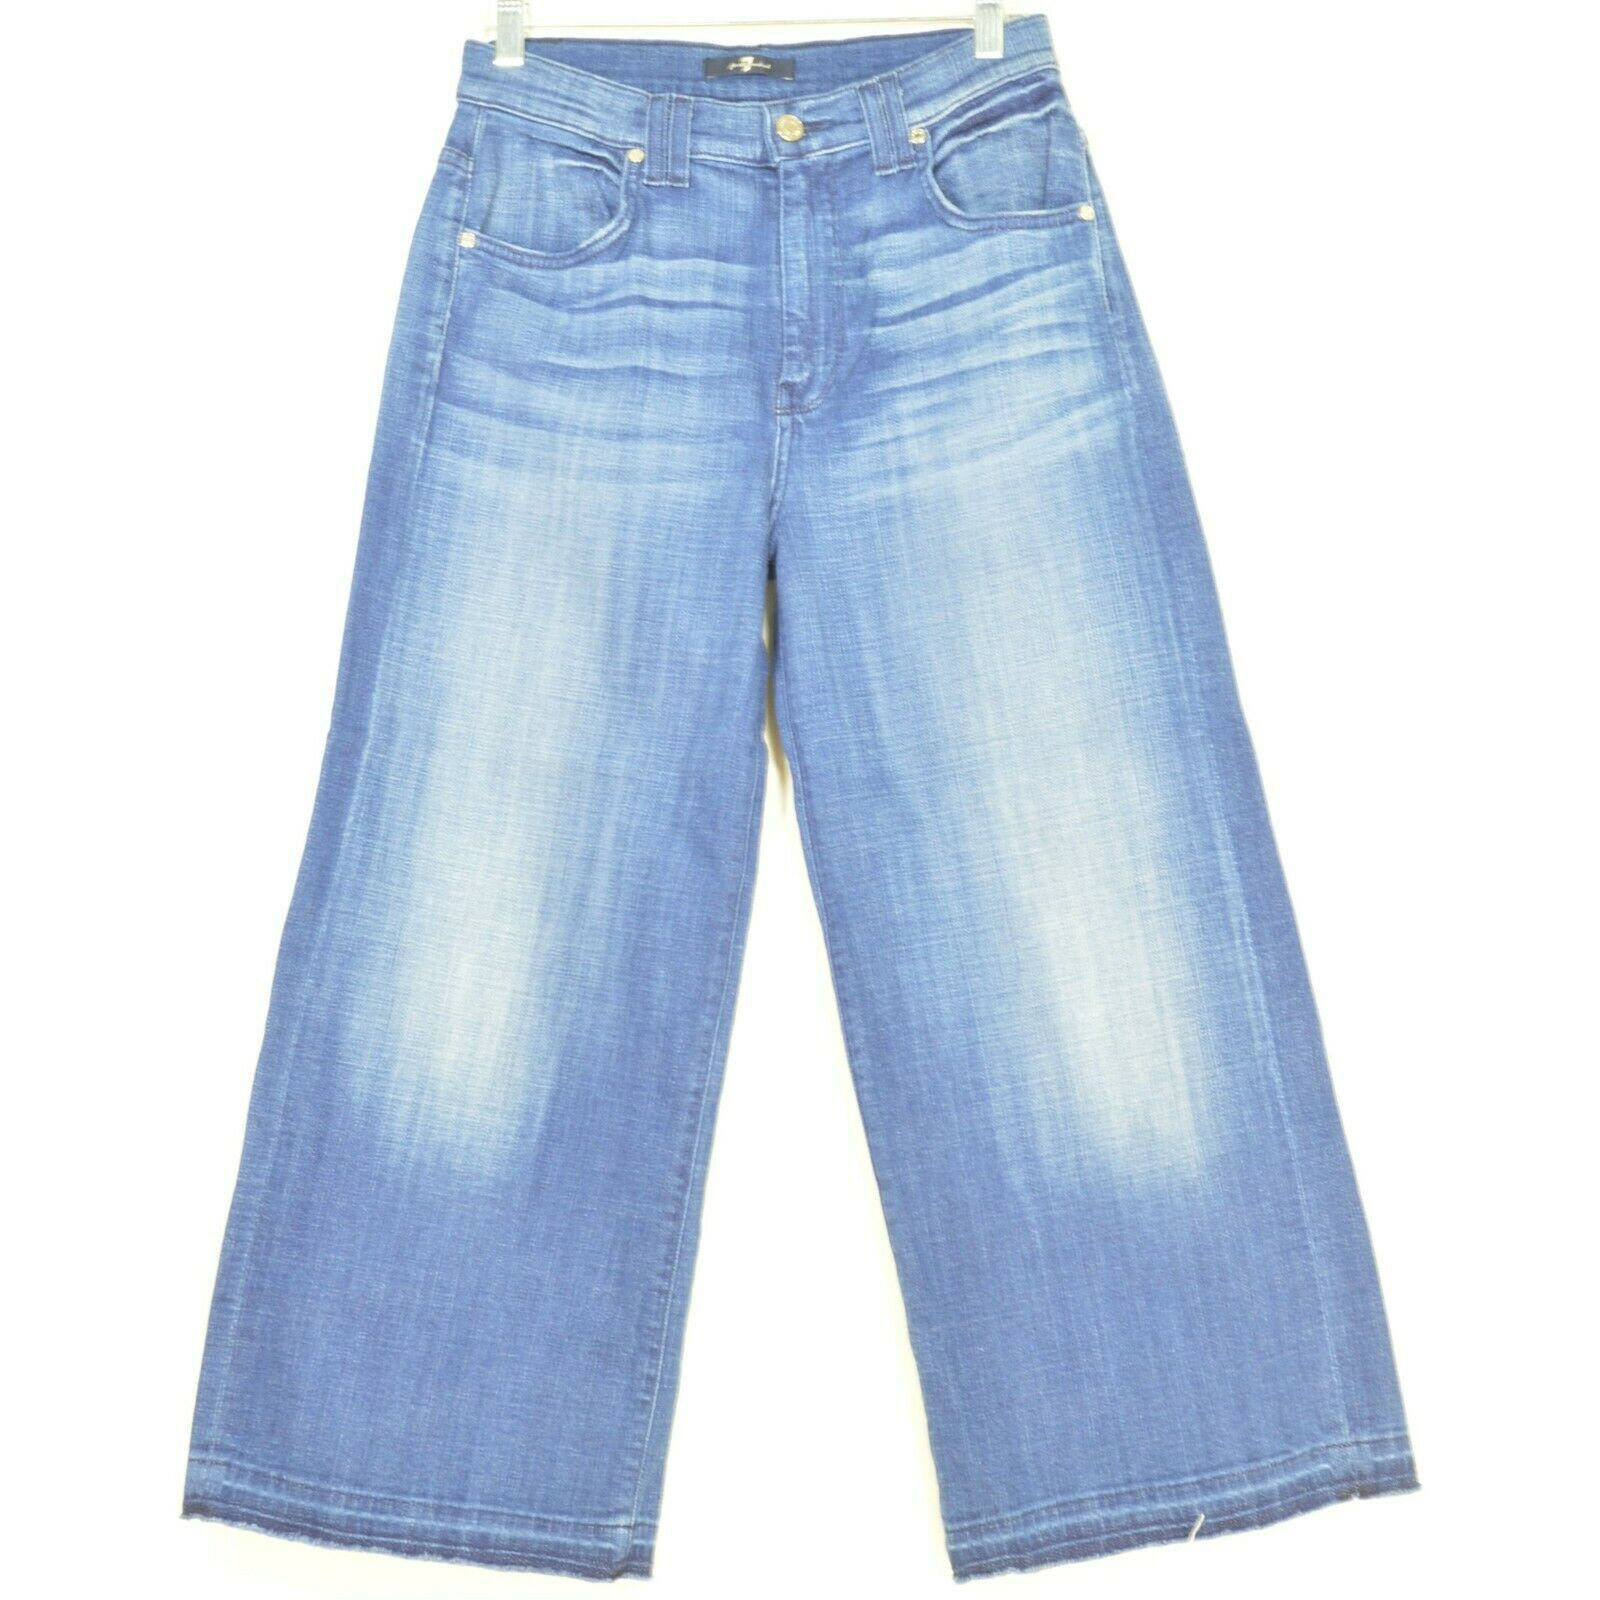 7 For All Mankind jeans cropped 29 x 24 NWT raw hem USA